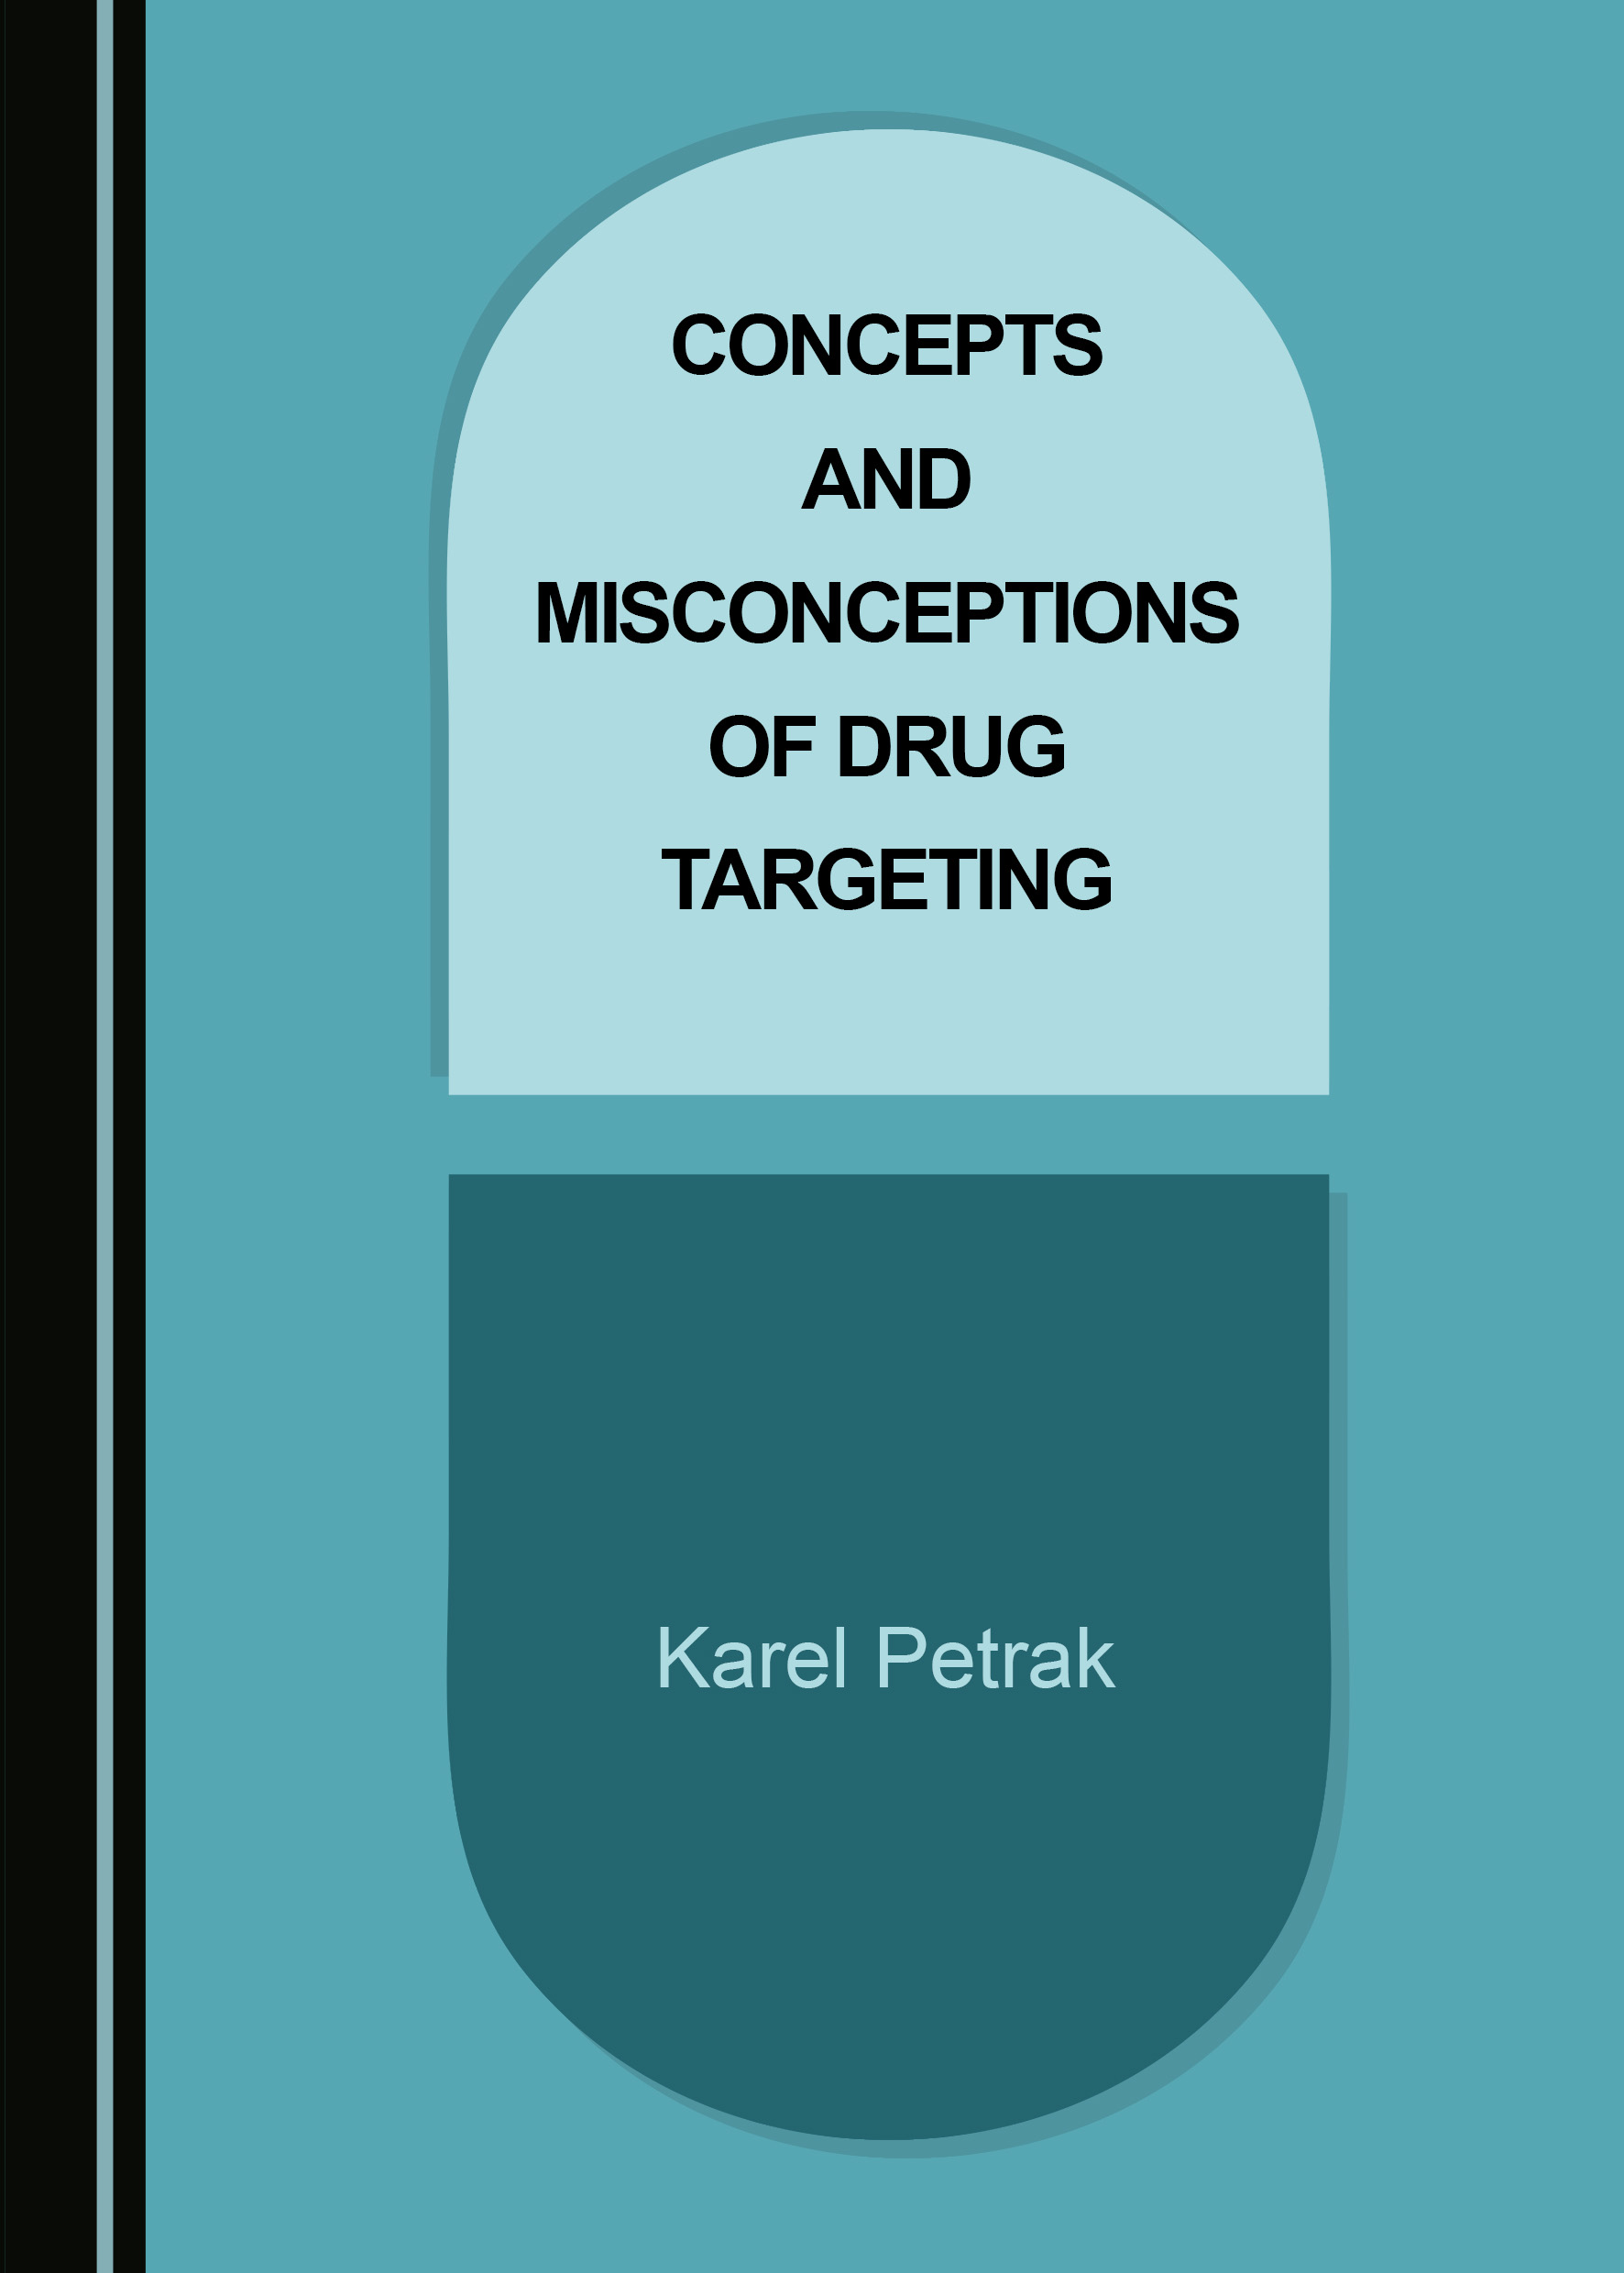 Concepts and Misconceptions of Drug Targeting